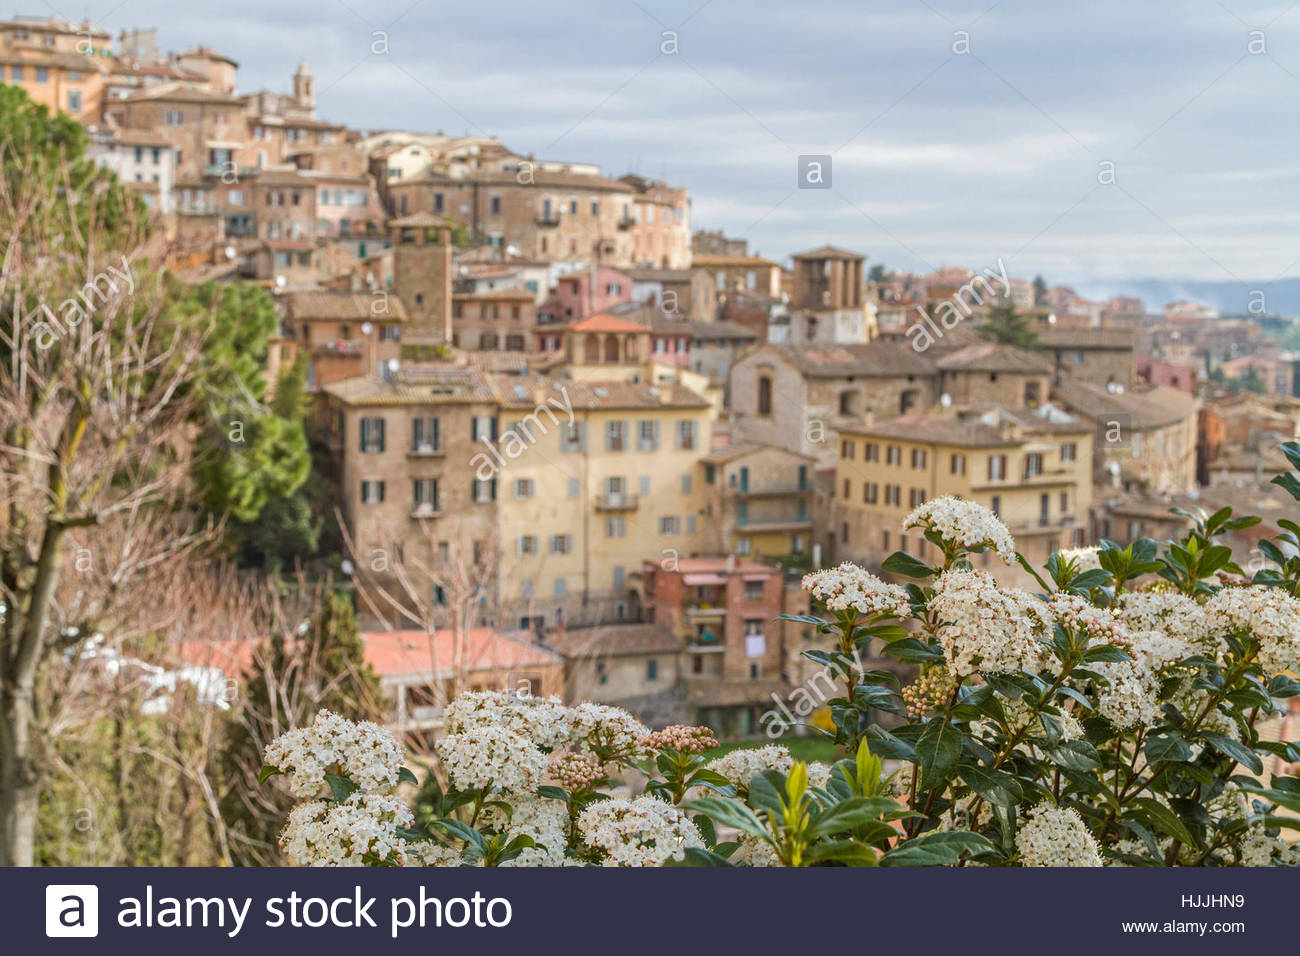 city, town, italy, historical, houses, city, town, centre, italy, umbrien, - Stock Image